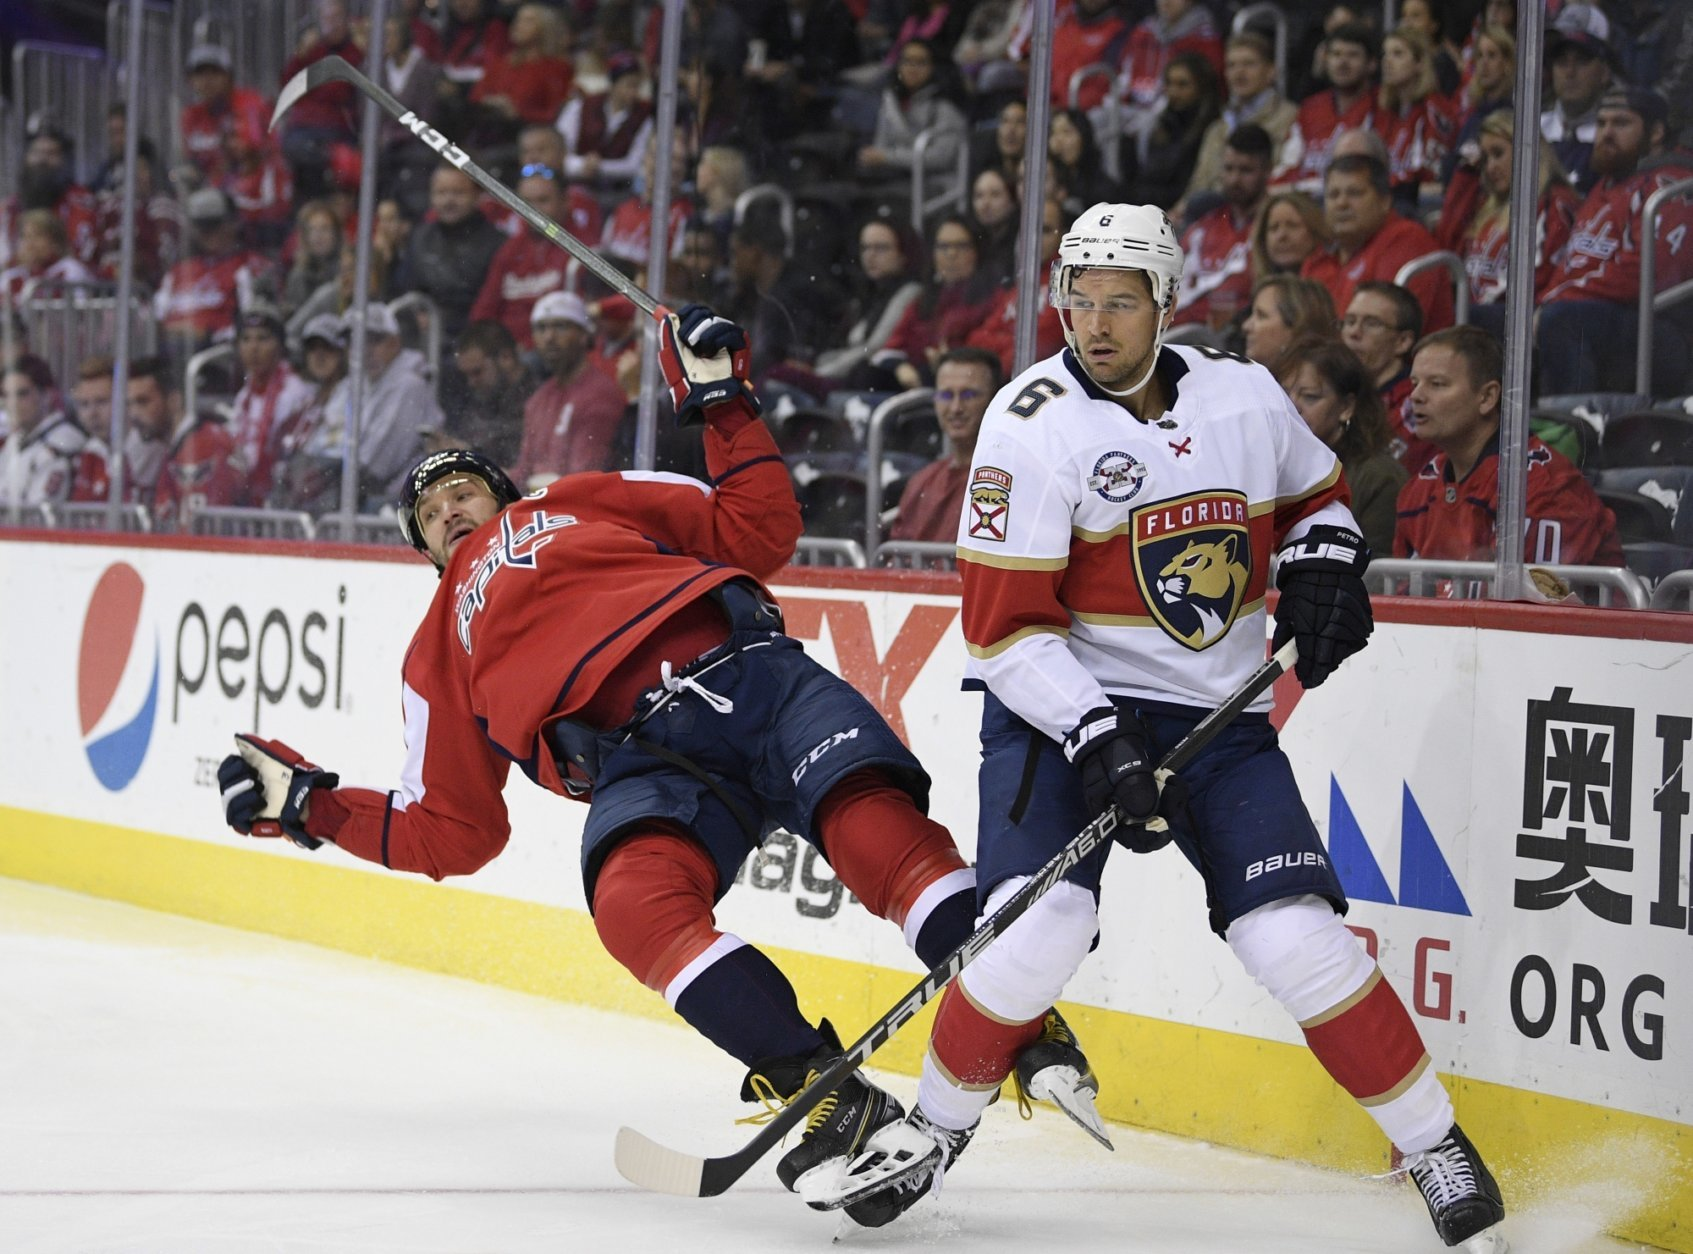 Washington Capitals left wing Alex Ovechkin, left, of Russia, collides with Florida Panthers defenseman Alexander Petrovic (6) during the second period of an NHL hockey game, Friday, Oct. 19, 2018, in Washington. (AP Photo/Nick Wass)